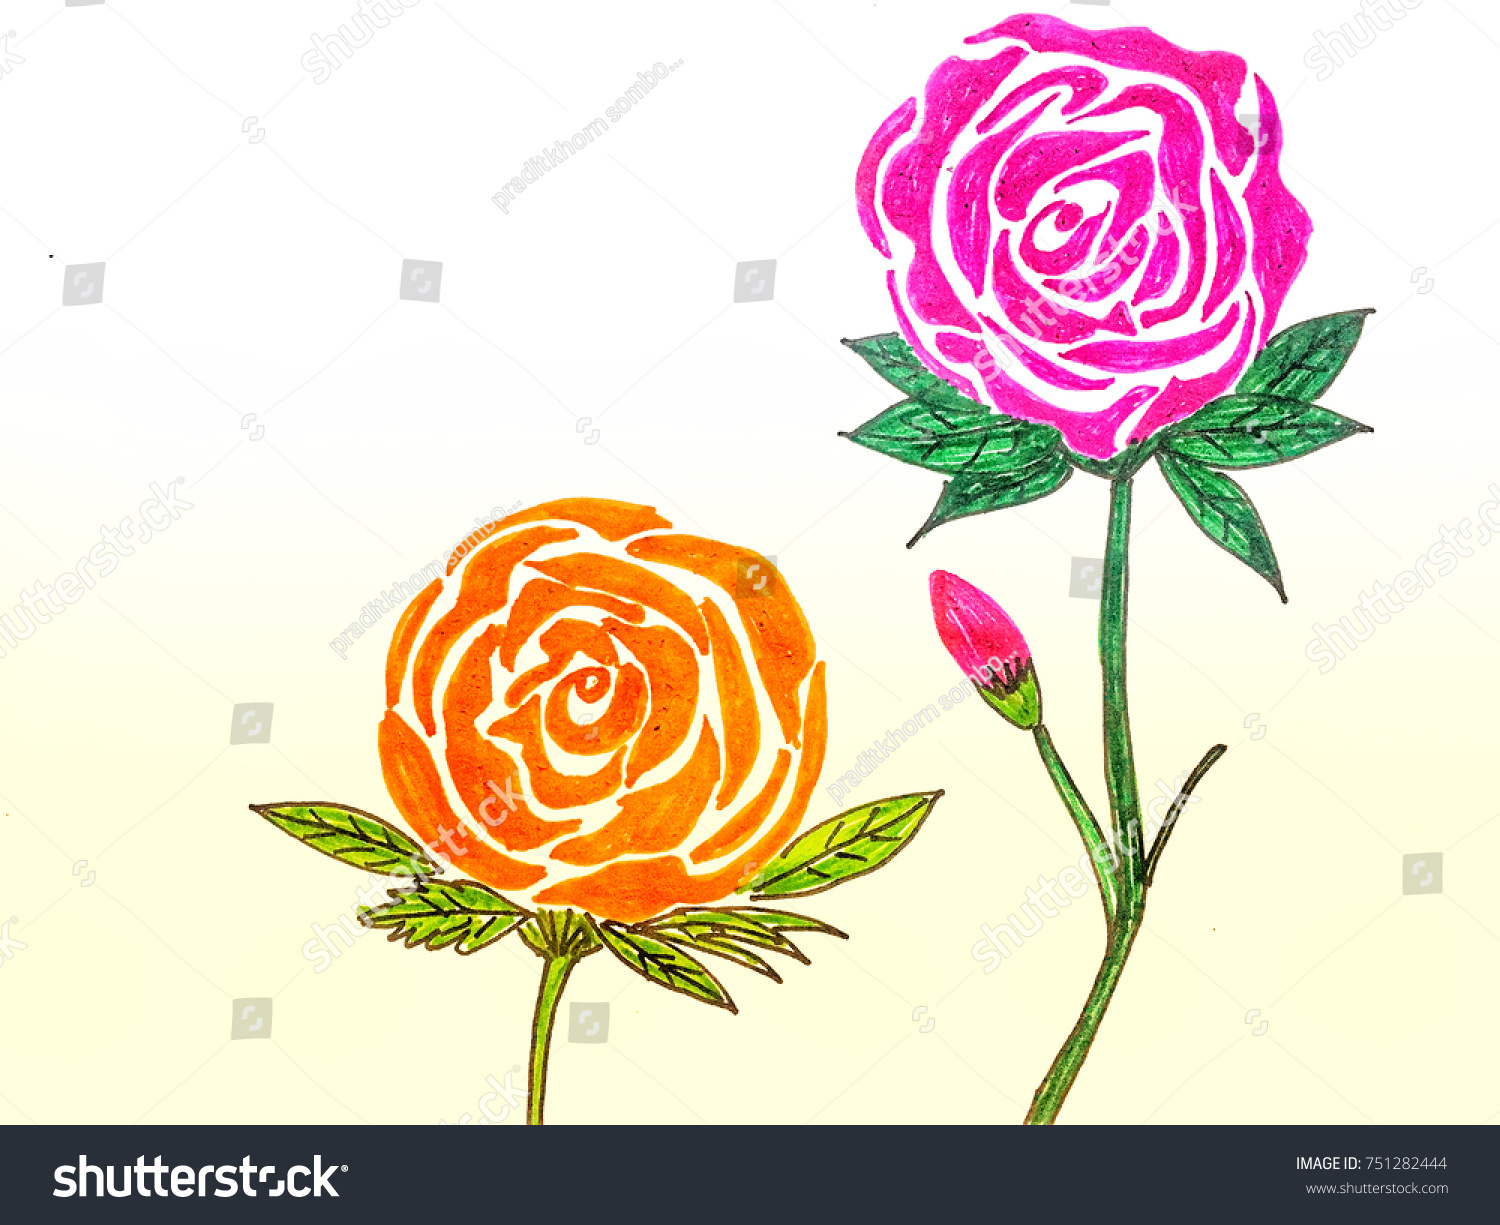 Line Drawing Of Rose Plant : Beautiful rose flower blossom line drawing stock illustration